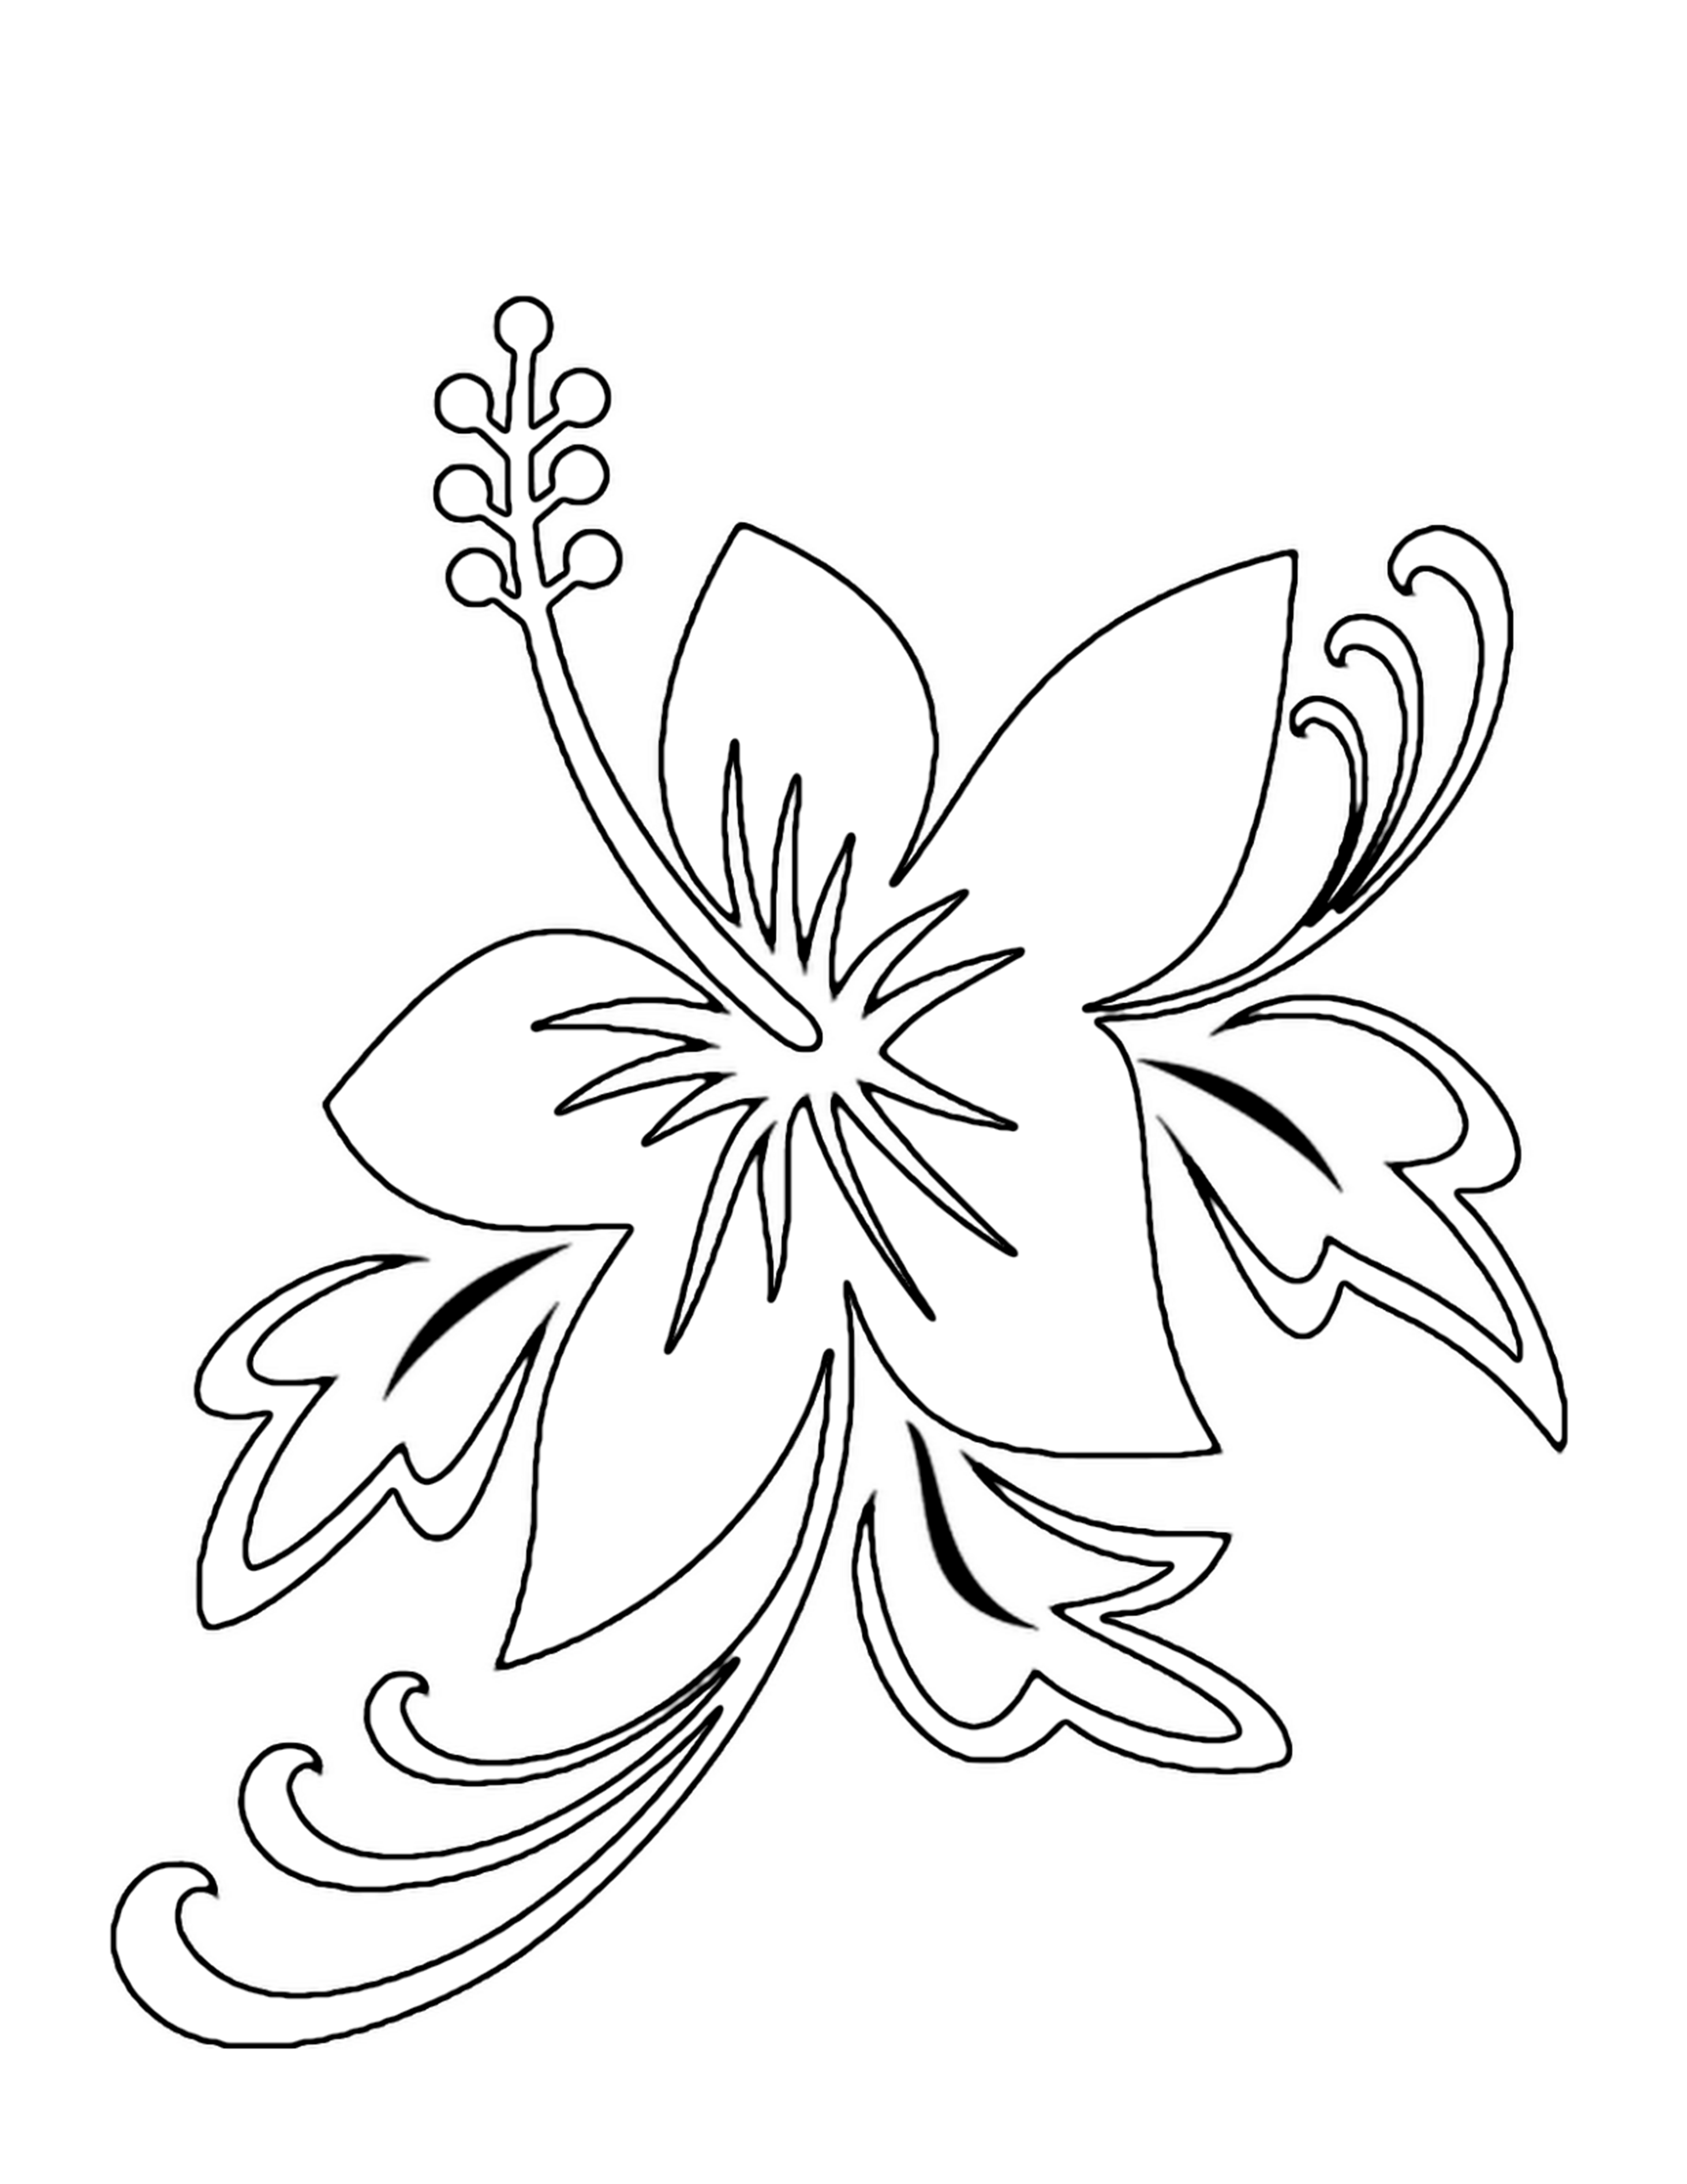 colouring pictures of plants free printable flower coloring pages for kids best pictures plants of colouring